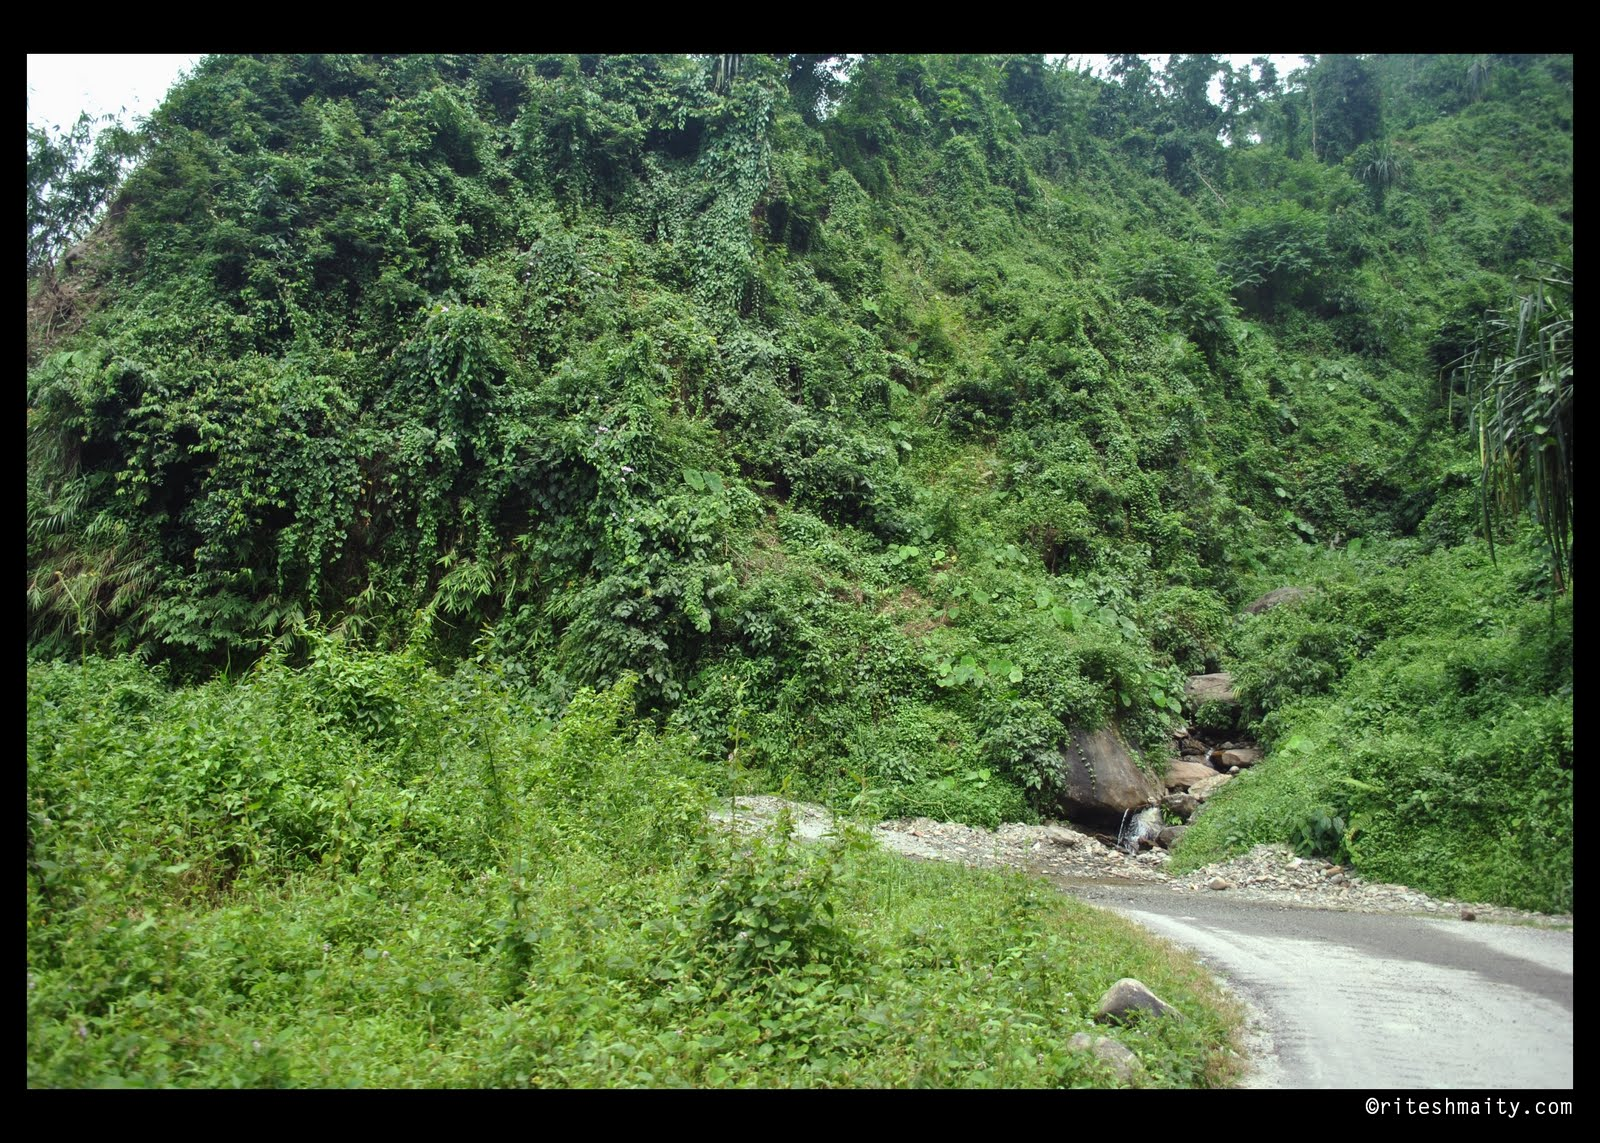 Gorubathan India  City new picture : Travel & Photography: Road to Lava Exploring the Natural Beauty